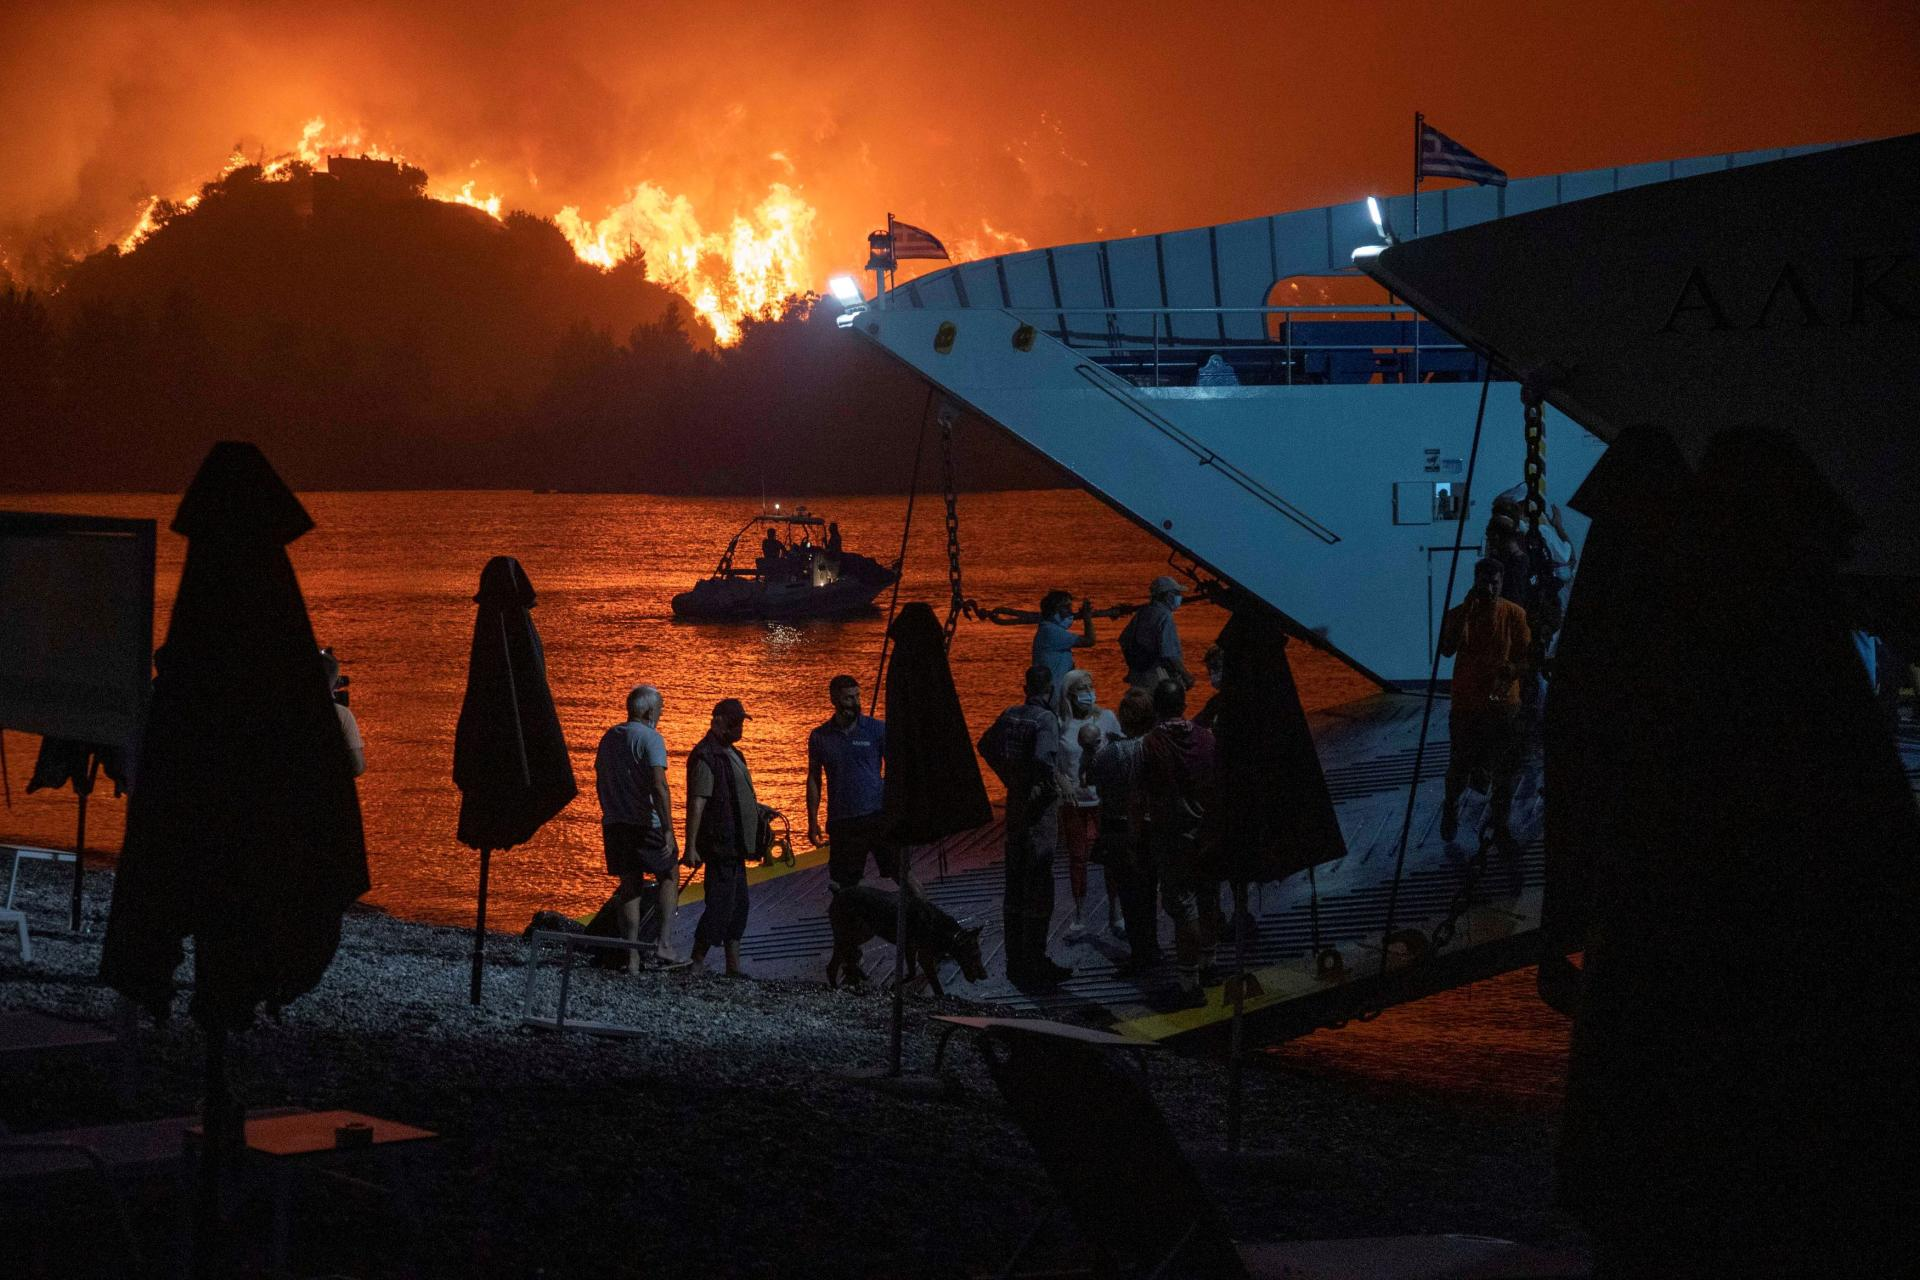 Residents of Limni, on the island of Evia, were evacuated by ferry on August 6, 2021.